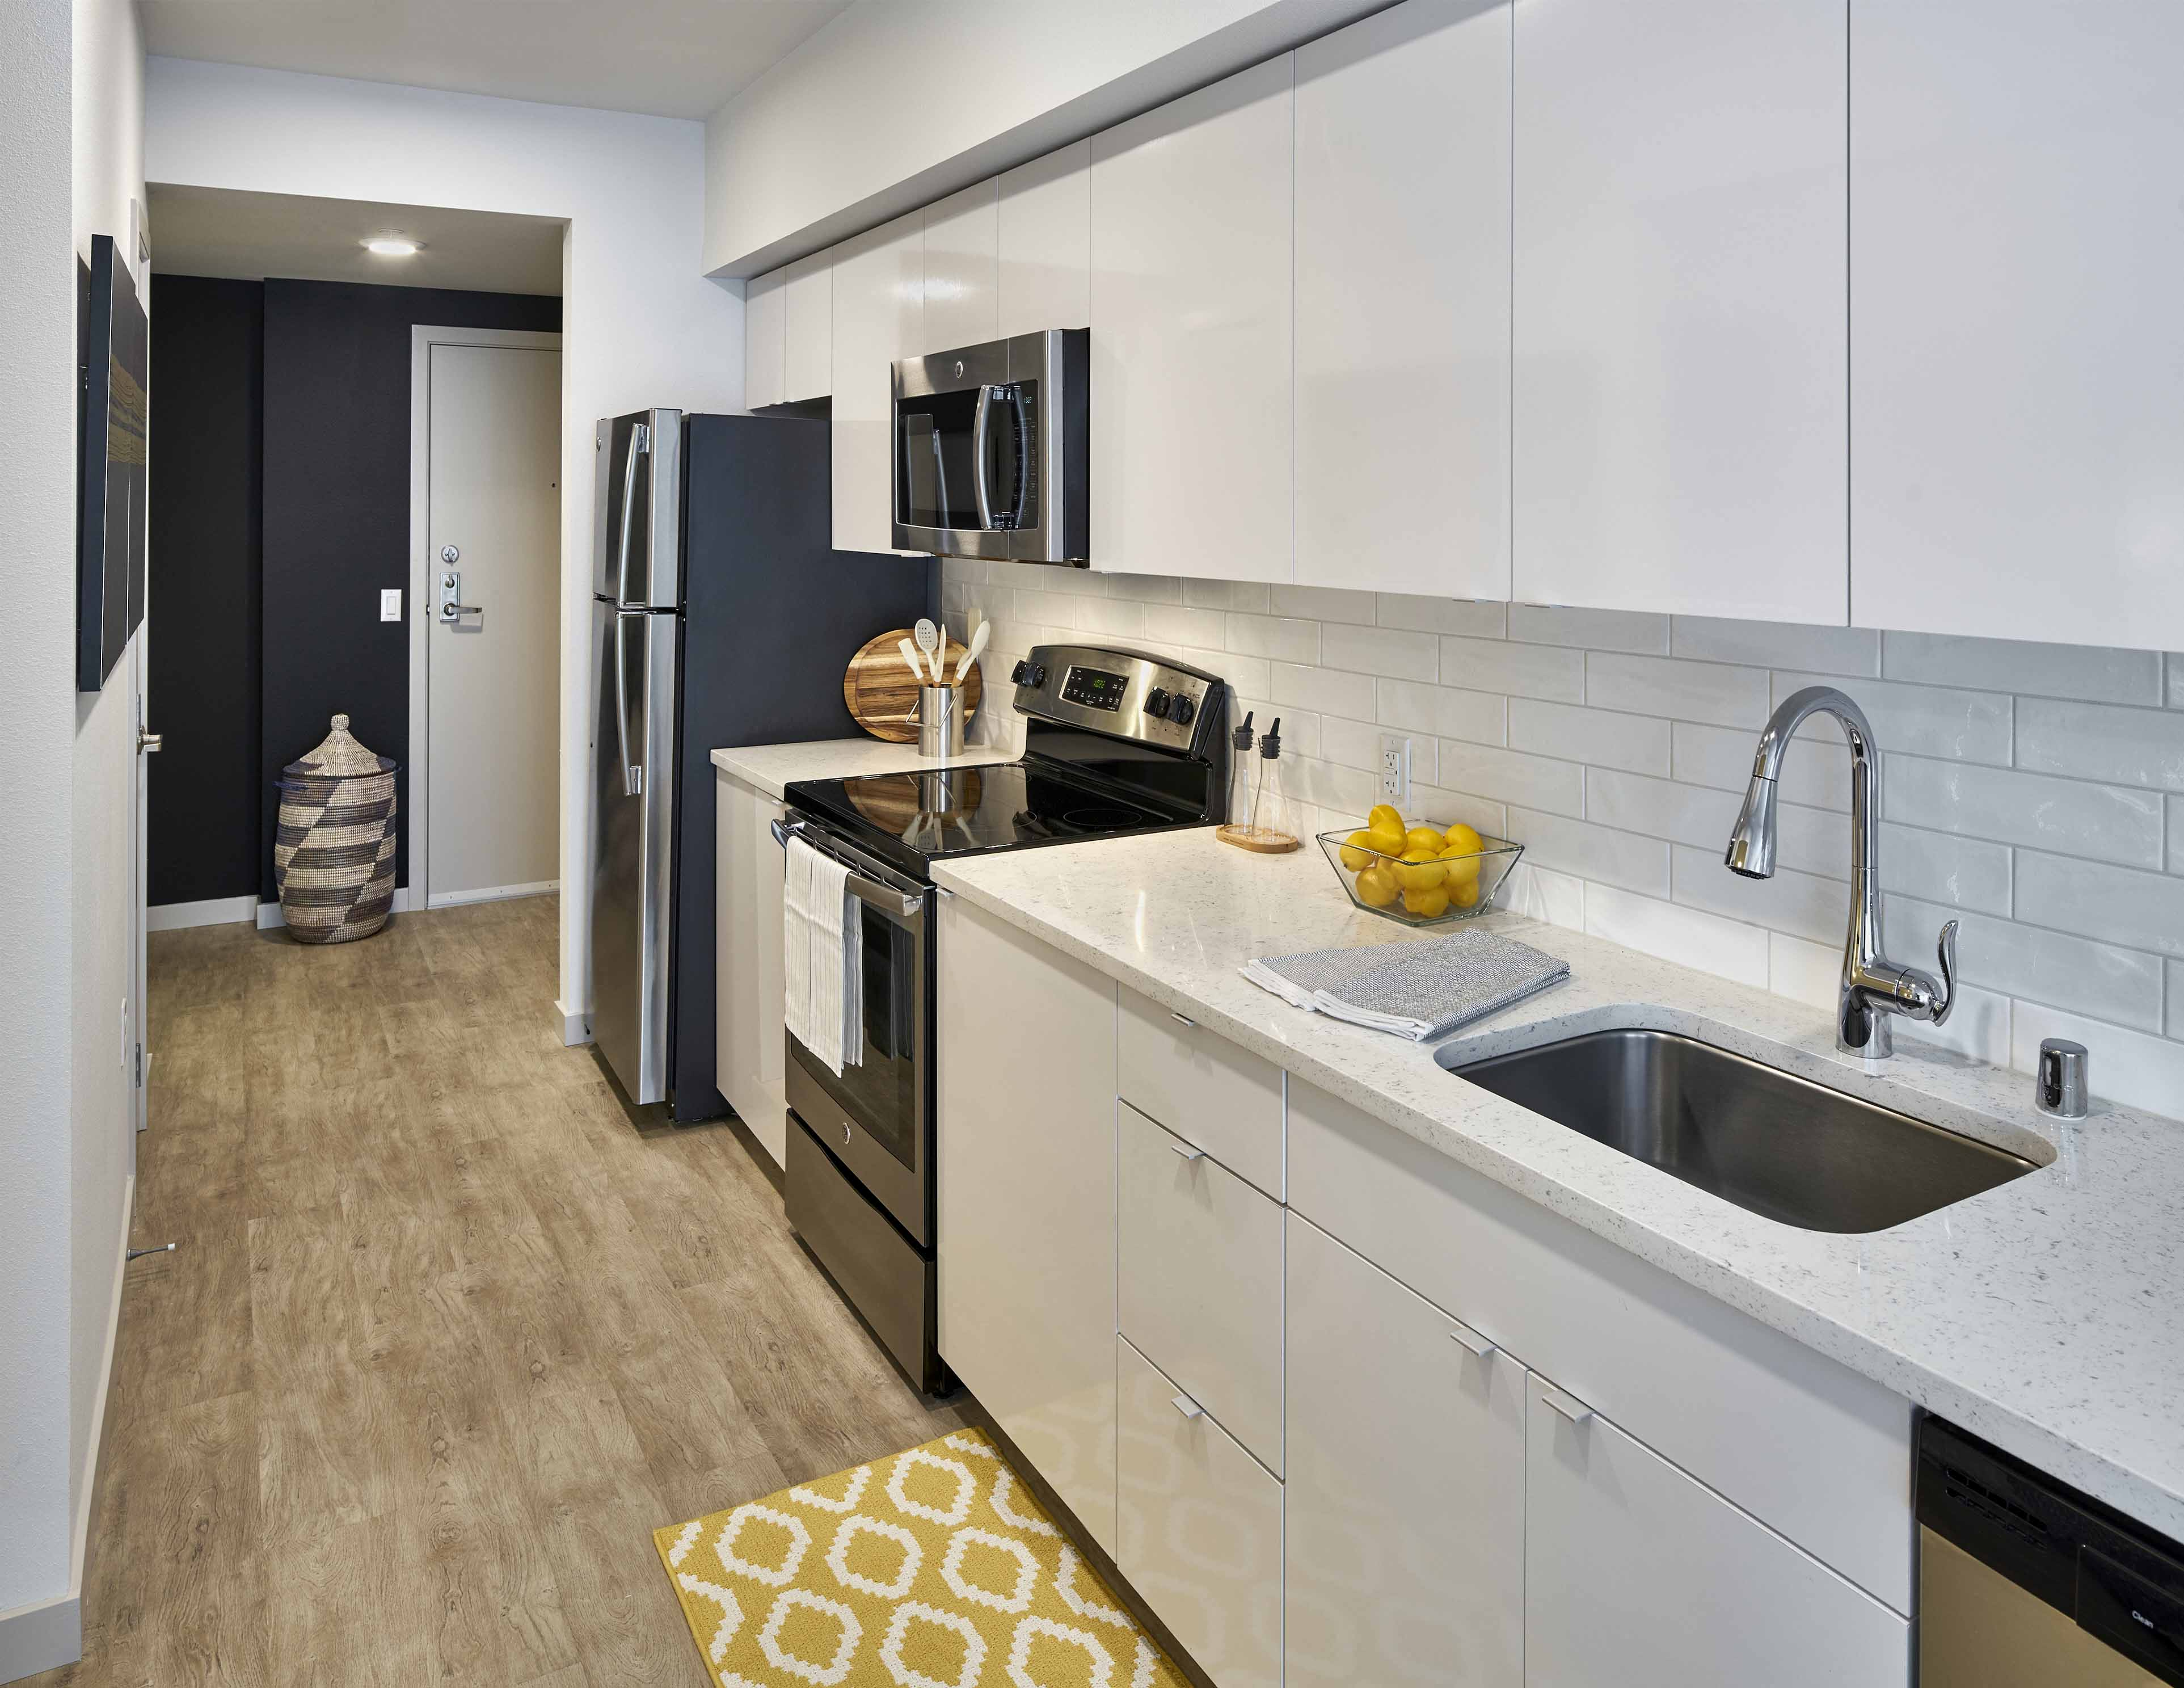 3801 Stone Way North Studio 2 Beds Apartment For Rent Photo Gallery 1